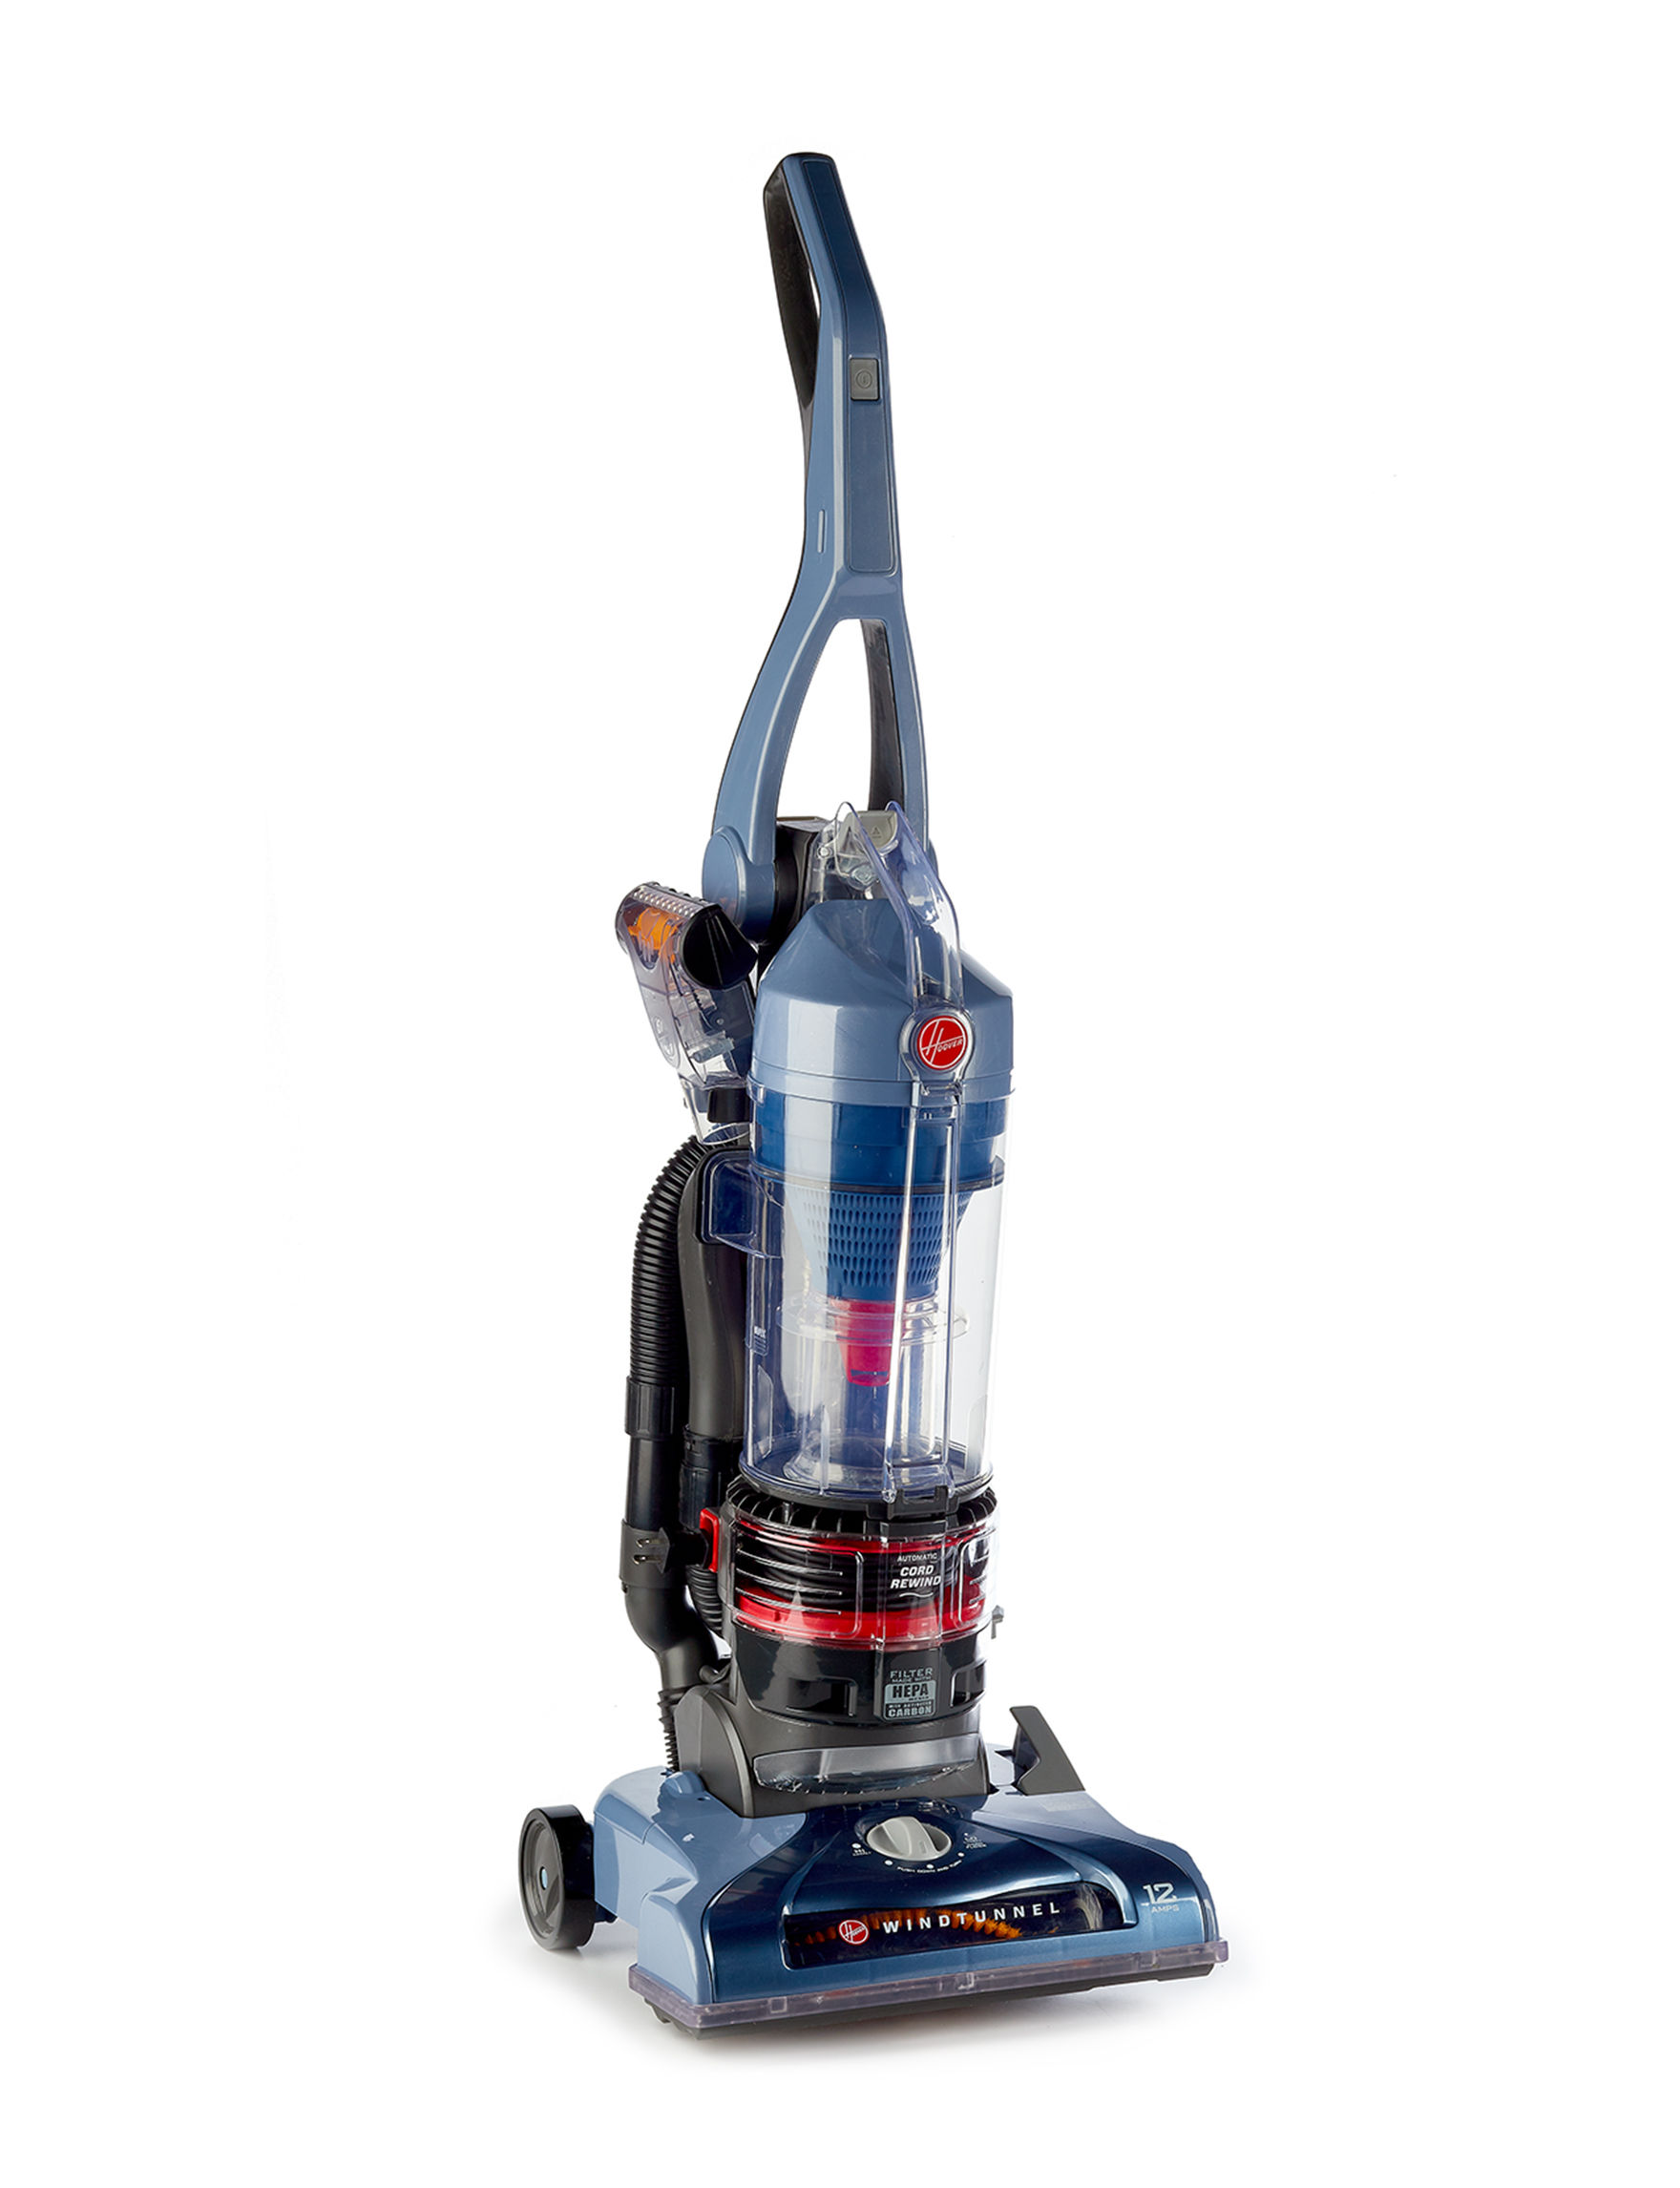 Hoover Blue Vacuums & Floor Care